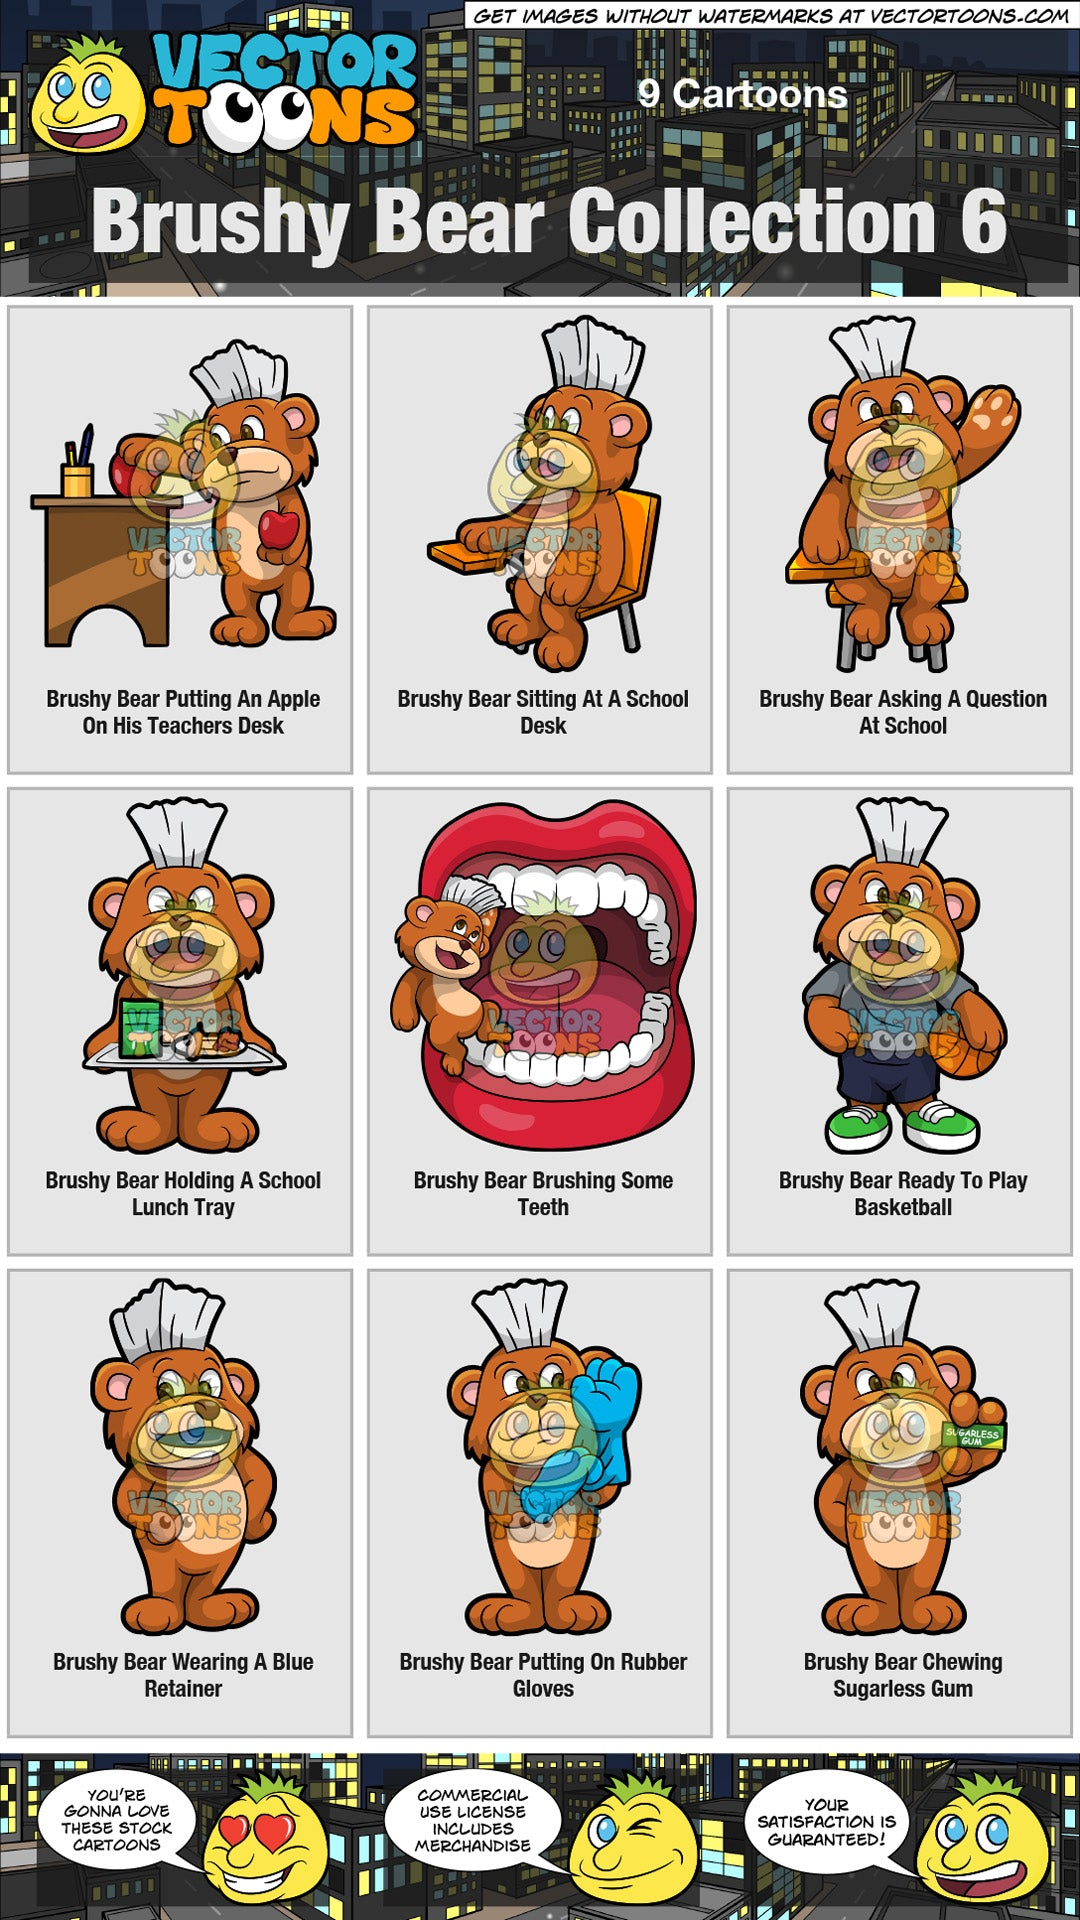 Brushy Bear Collection 6